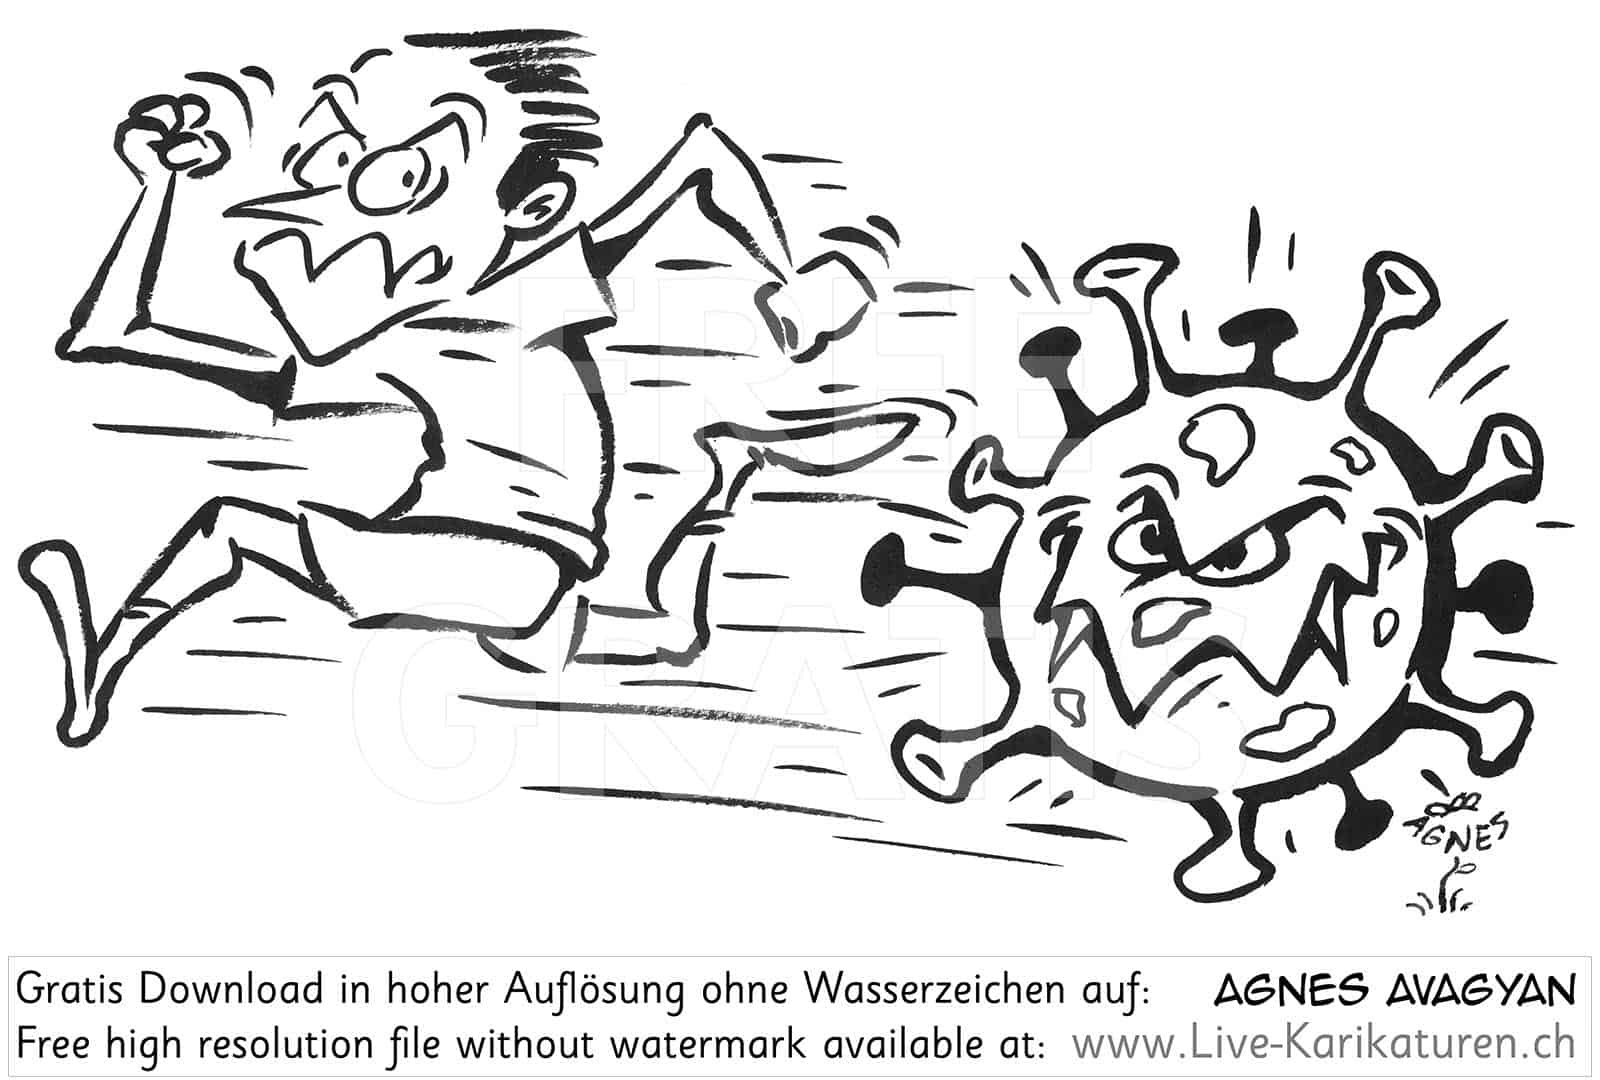 Virus Corona Covid-19 Viren schwarzweiss Sprint rennen Agnes Live-Karikaturen, Clipart, Comic, Cartoon, Illustration, Cartoon, Comic, Karikatur, Zeichnung, Download, kostenlos, Gratisbild, gratis, free, Kunst, Kuenstler, Live Karikaturist, Comiczeichner, Armenia